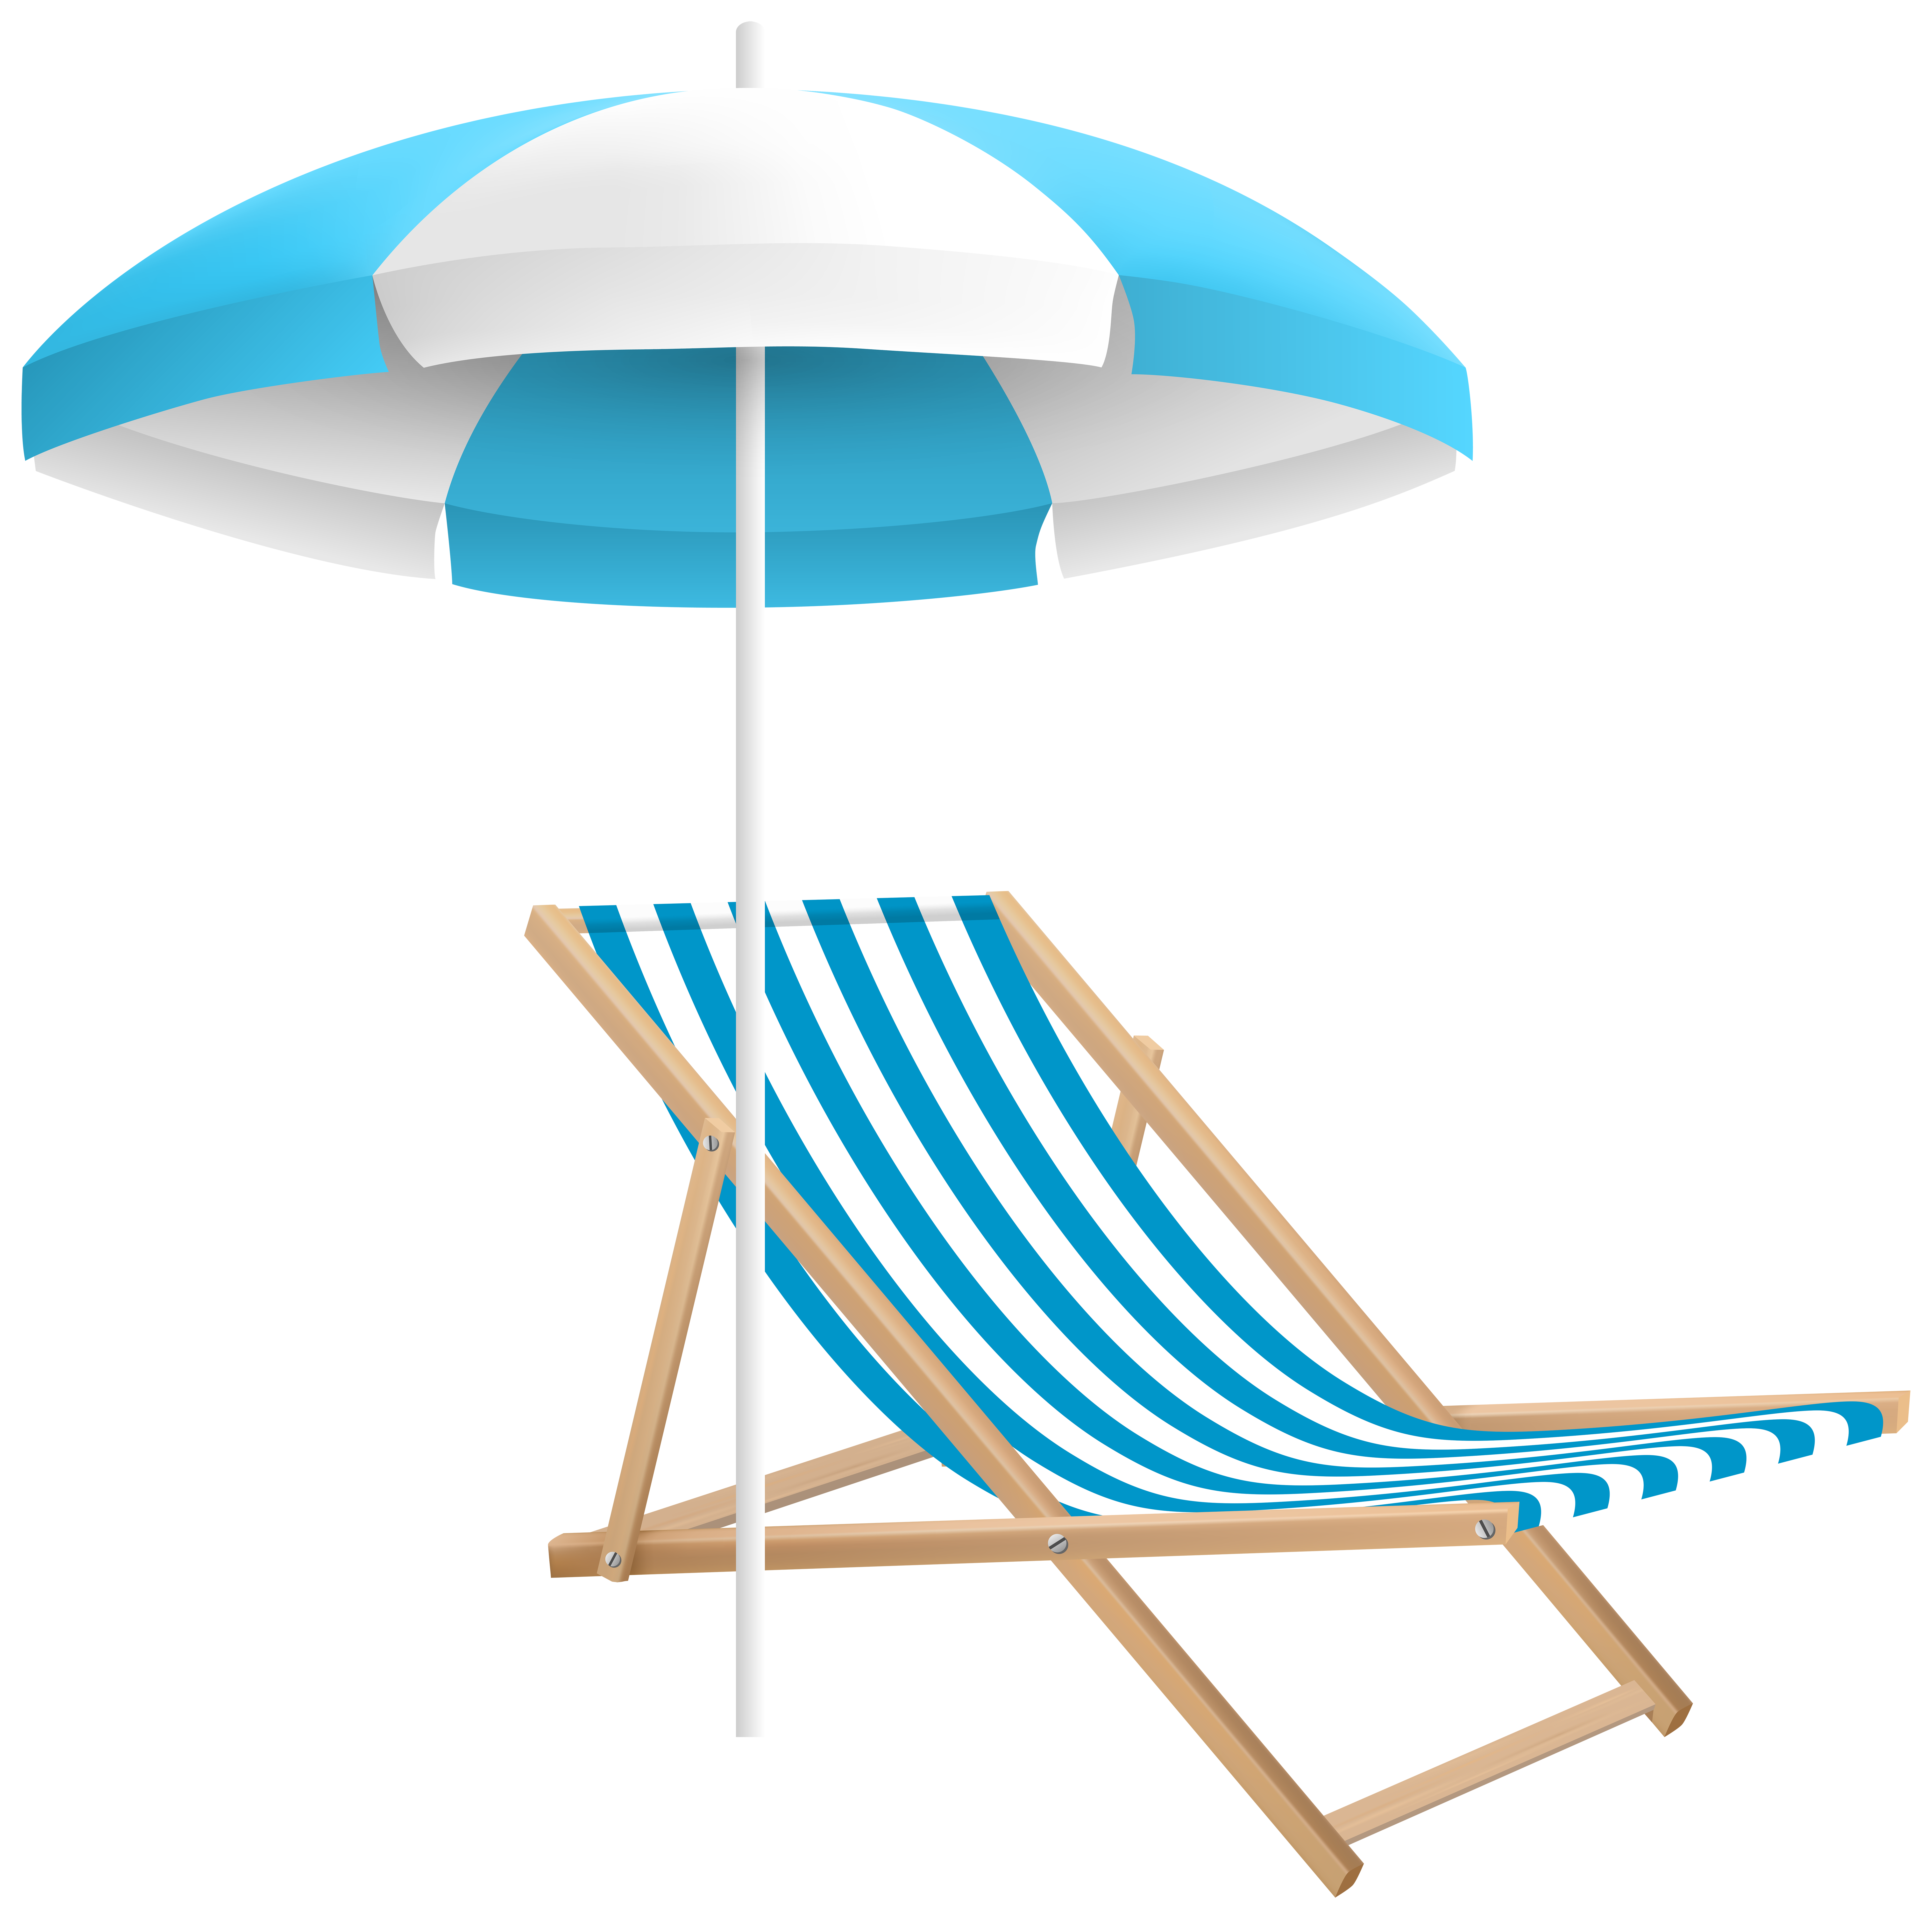 Vacation clipart beach chair Clip and  PNG Image